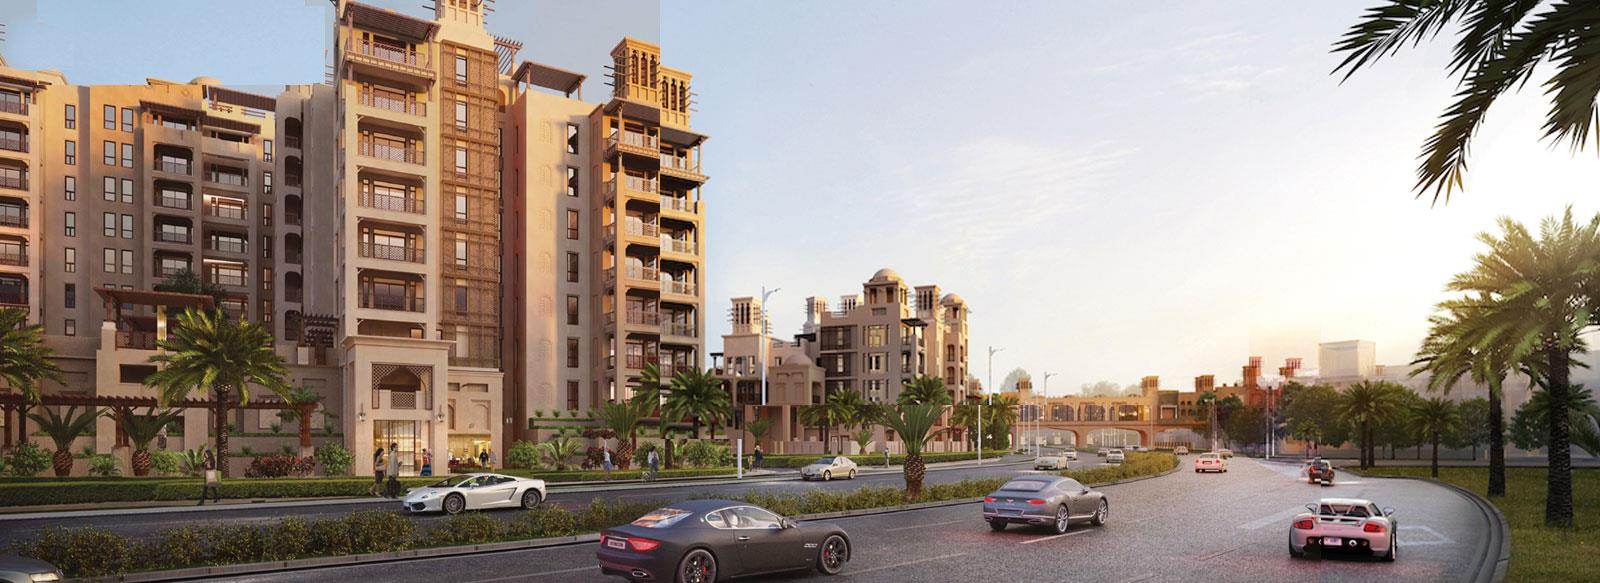 Lamtara Building 3 at Madinat Jumeirah Living